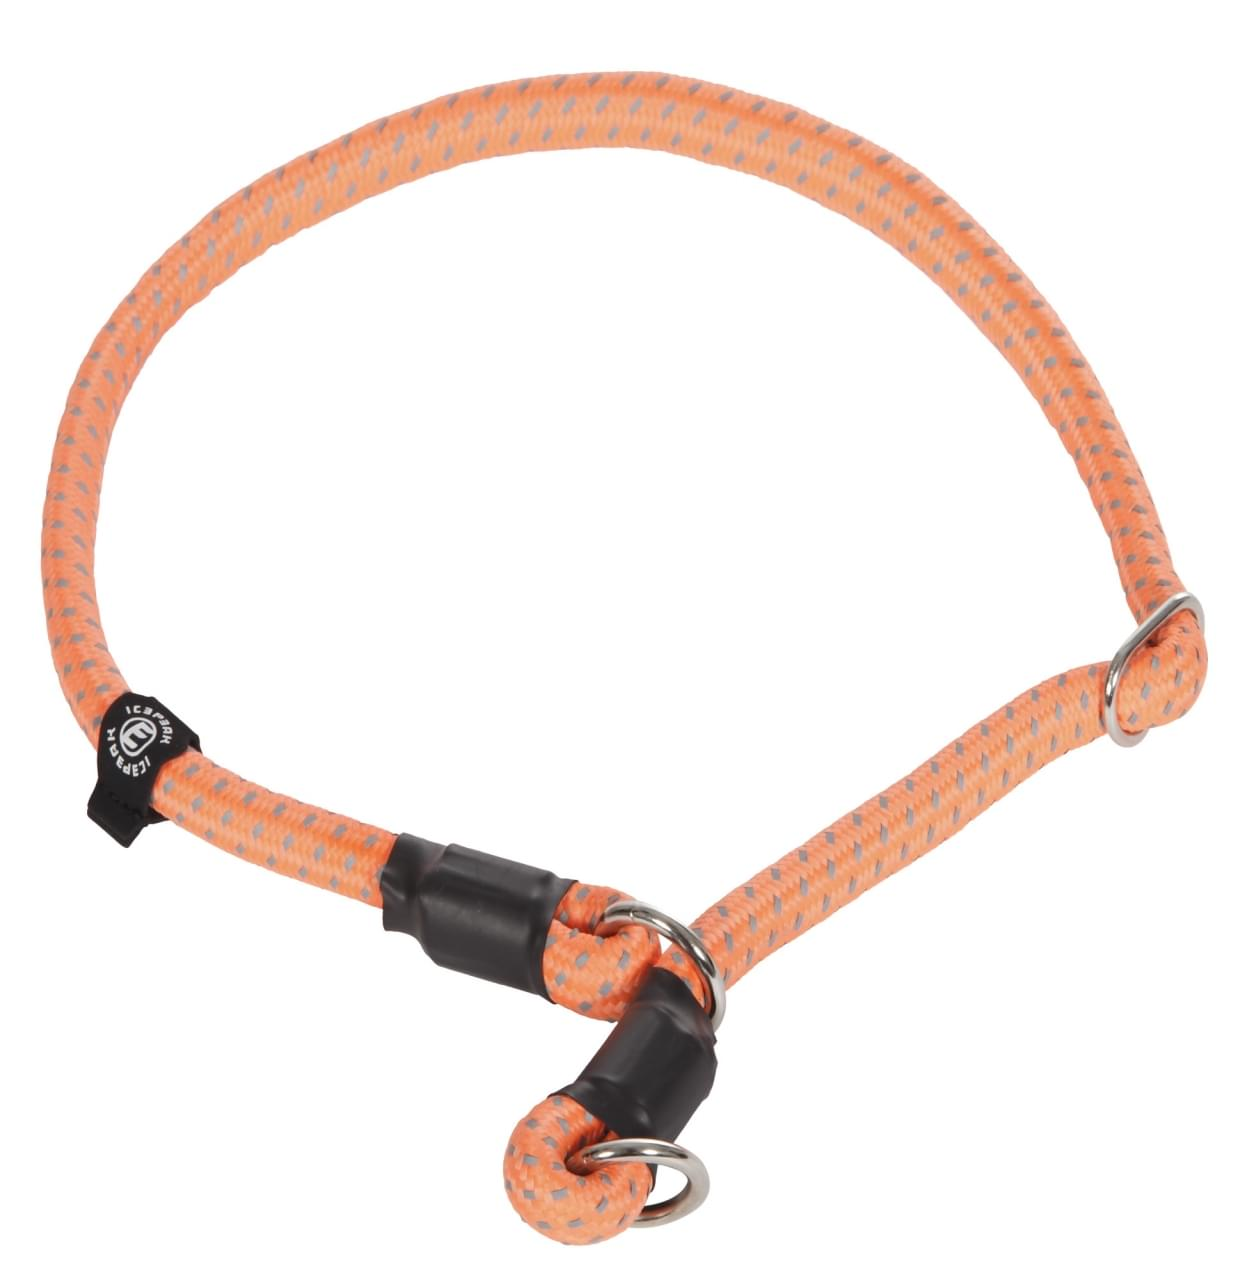 Icepeak Pet Prozone Round Collar Orange